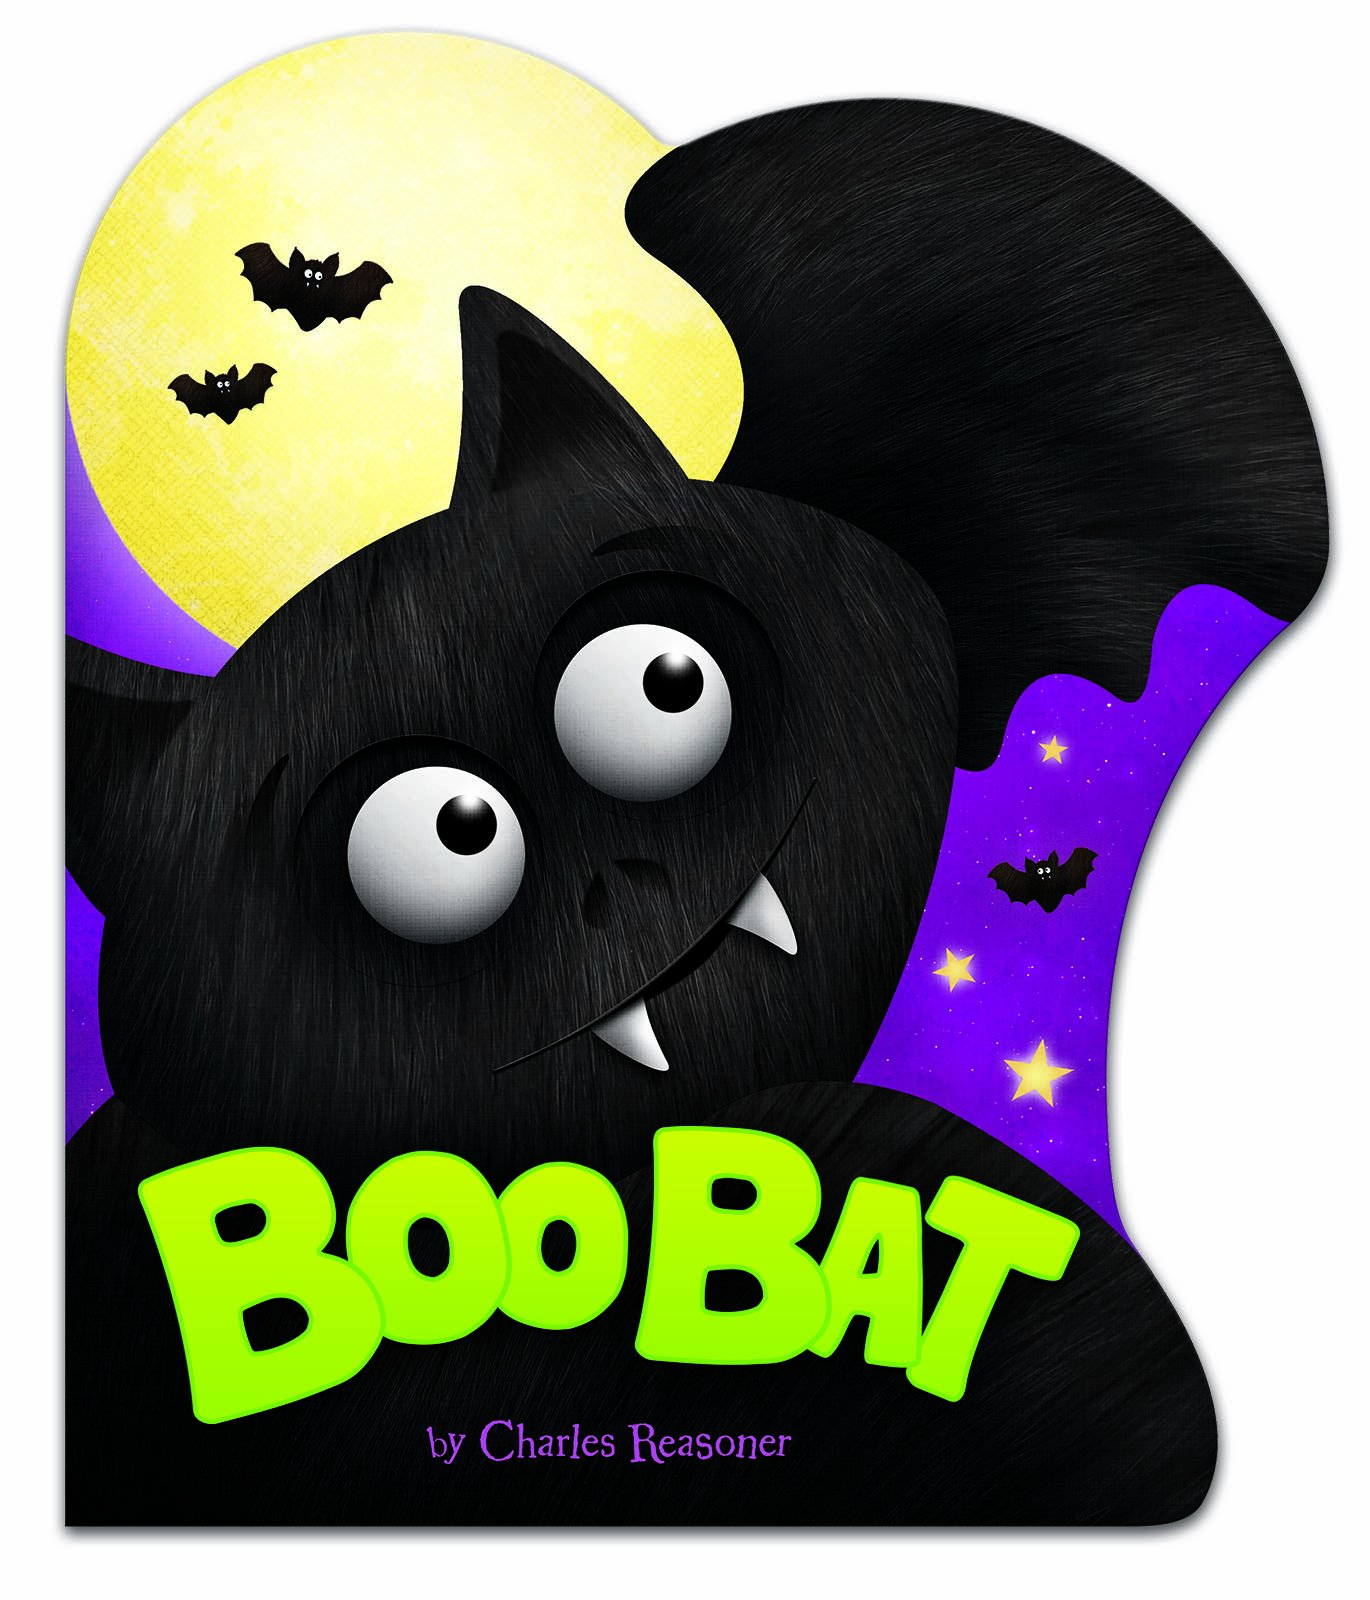 Boo Bat (Charles Reasoner Halloween Books)